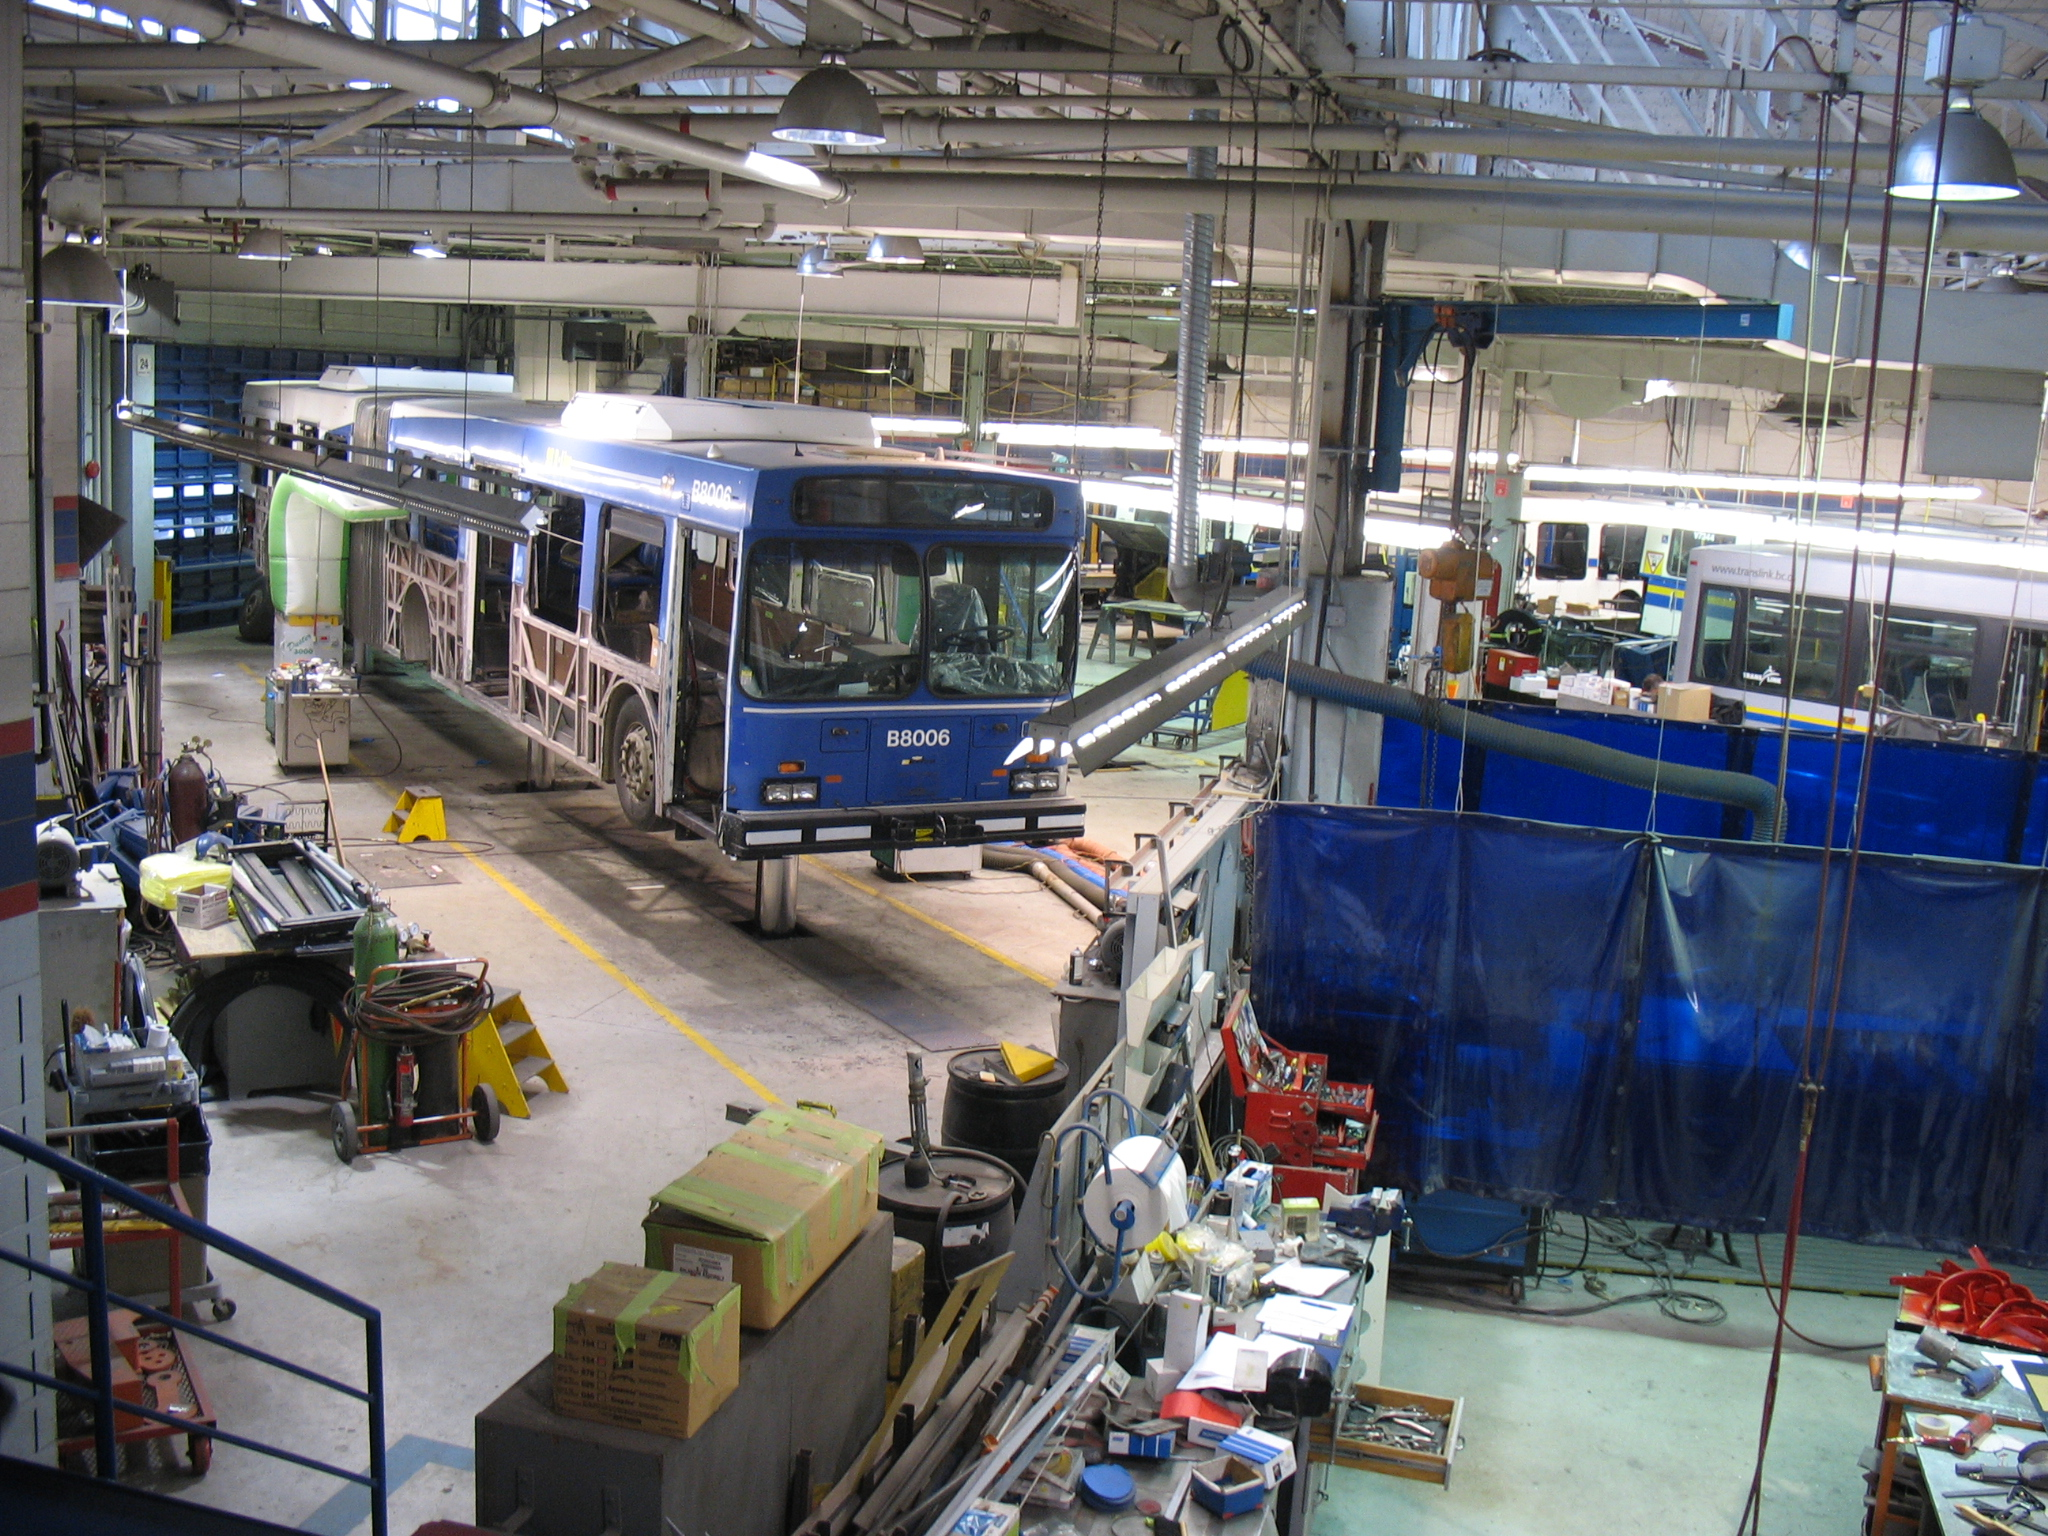 Another view of the articulated bus getting a mid-life overhaul. Notice that its lower body panels have been stripped off!